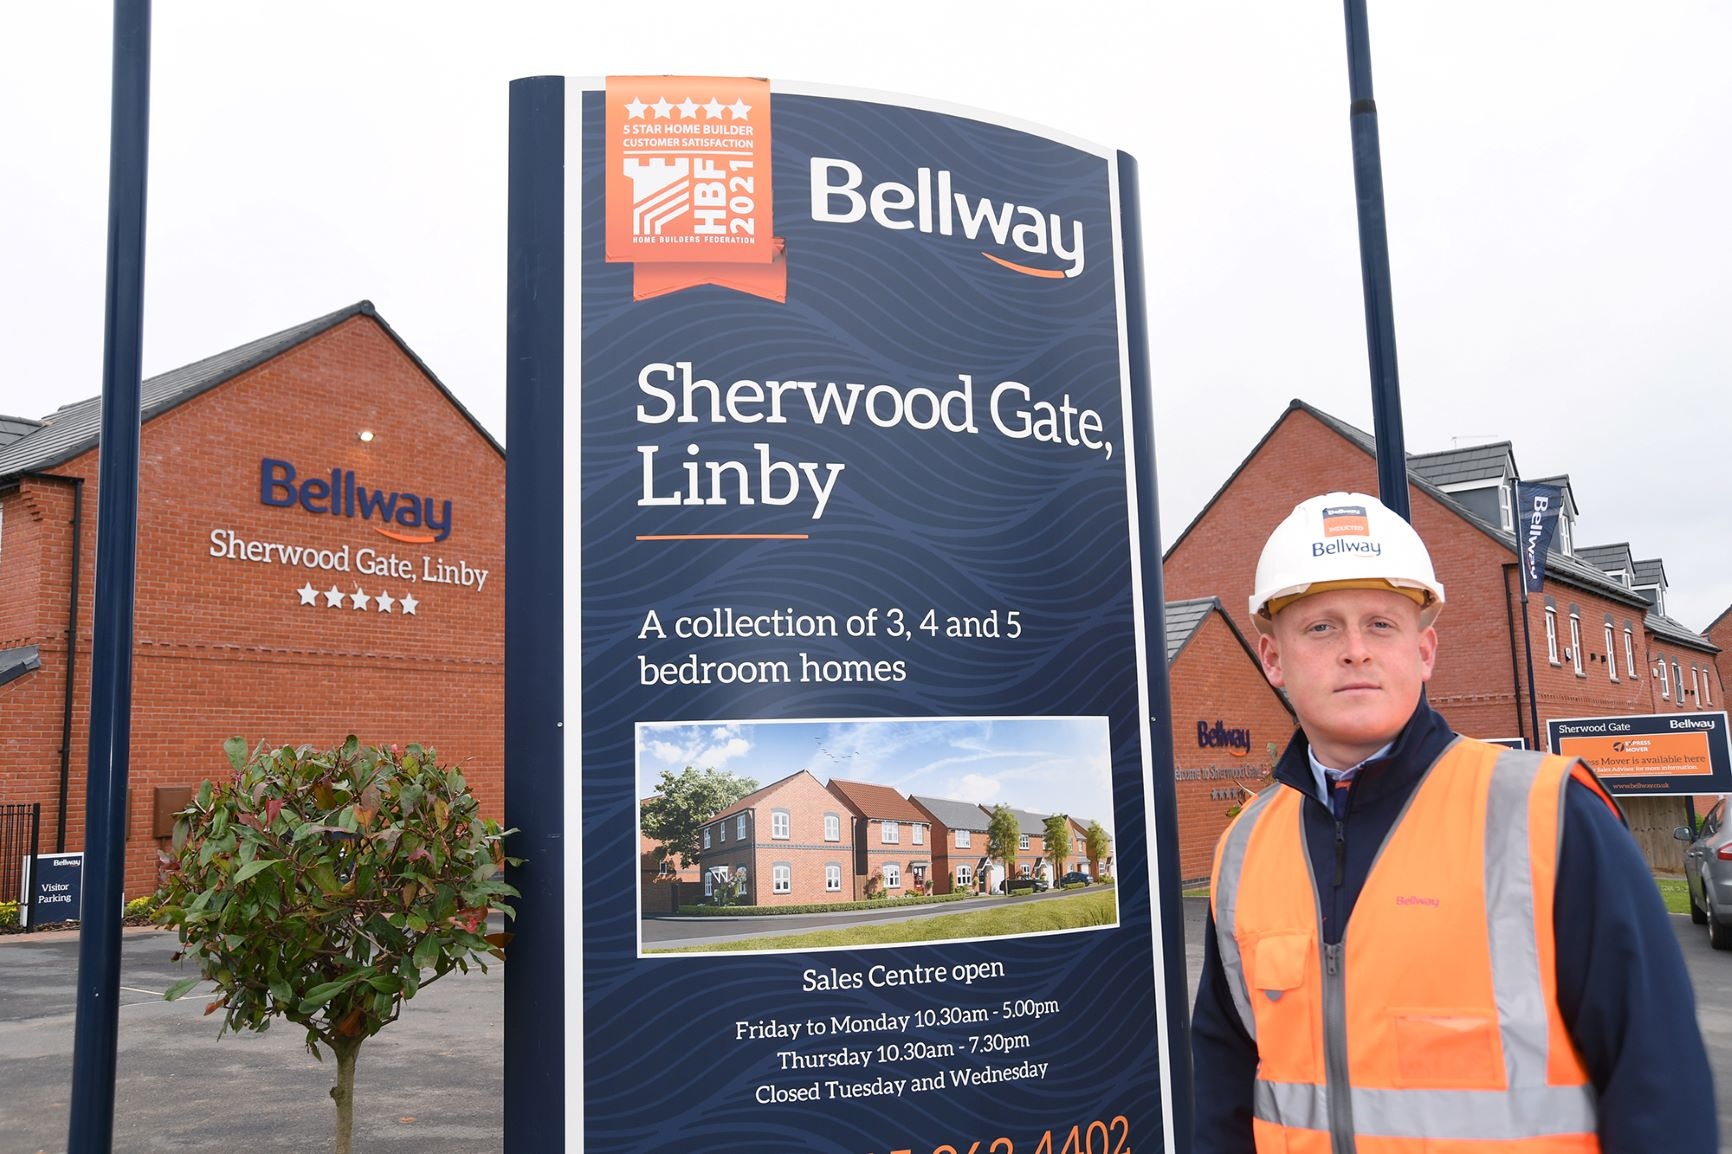 Derbyshire site manager wins leading industry award